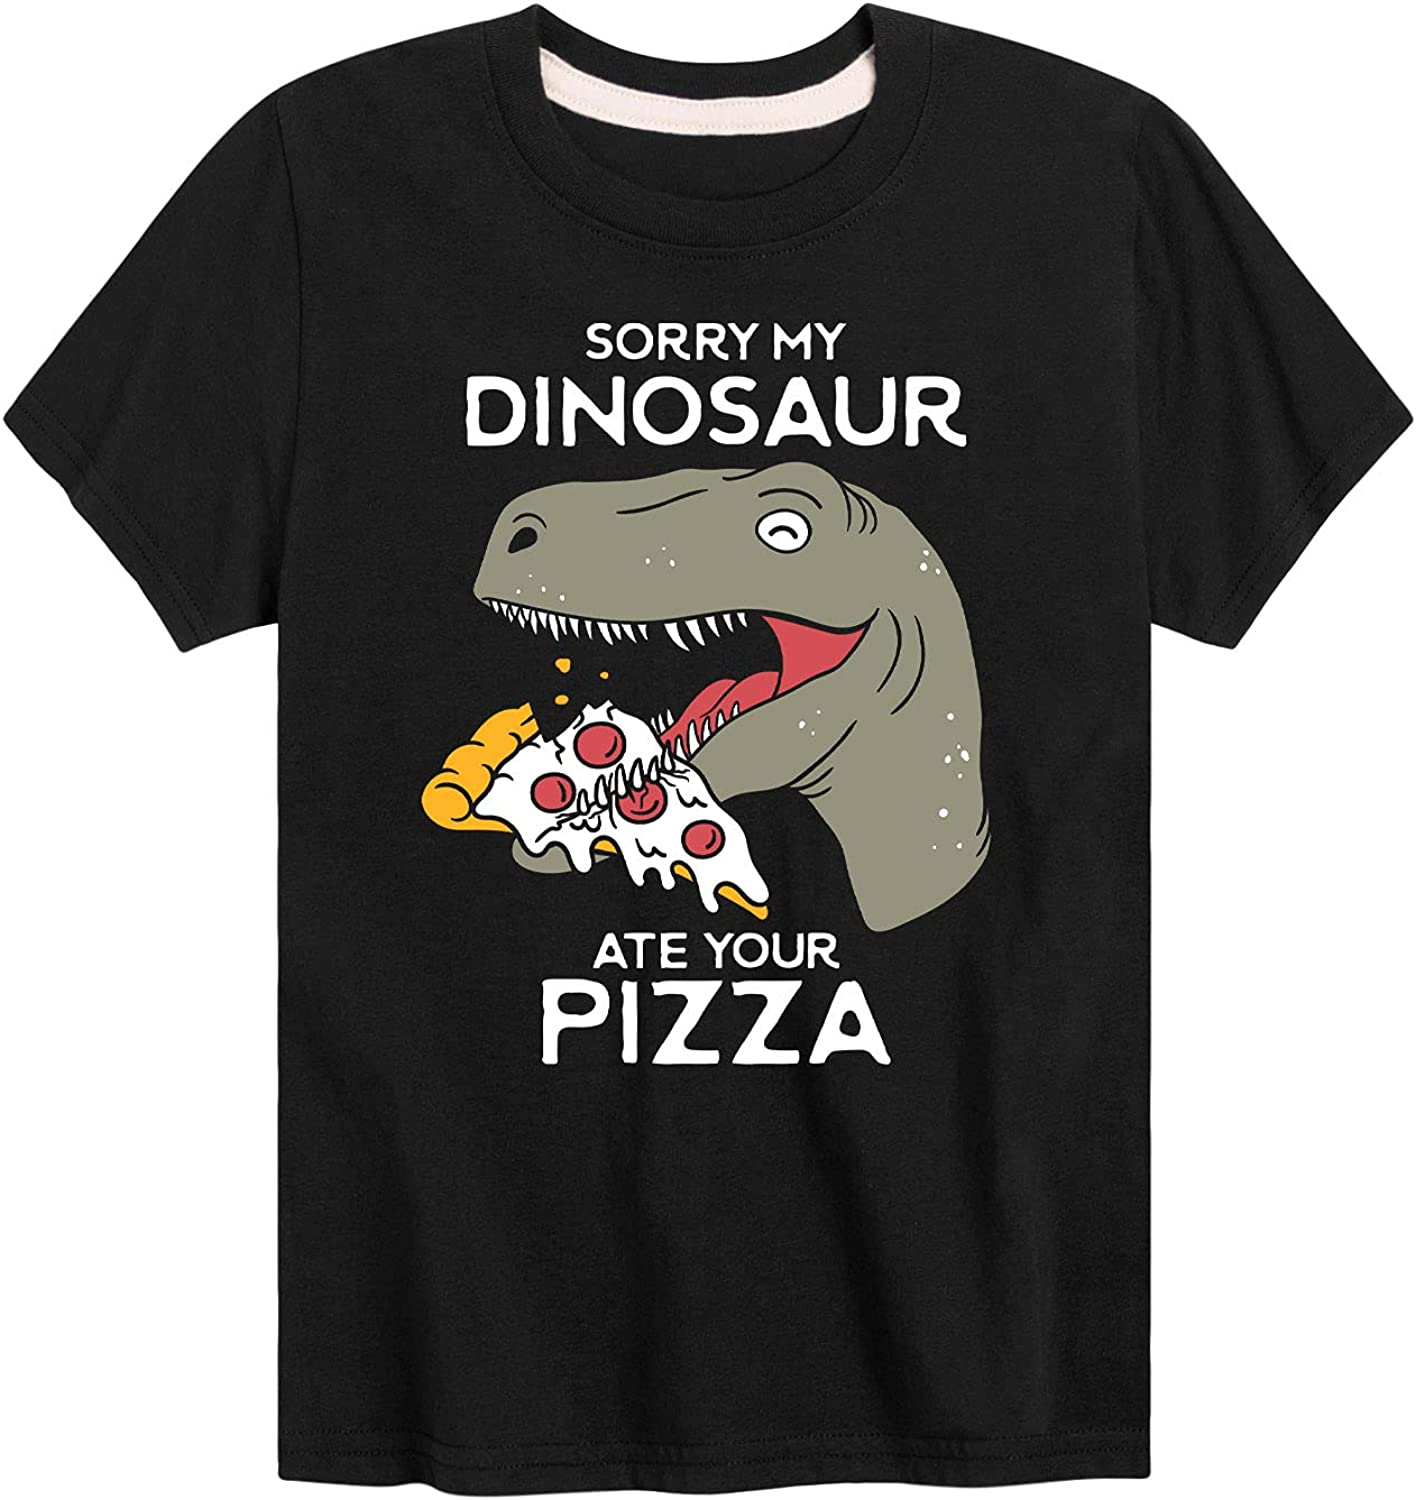 Instant Message Sorry My Dinosaur Ate Your Pizza - Toddler and Youth Short Sleeve T-Shirt